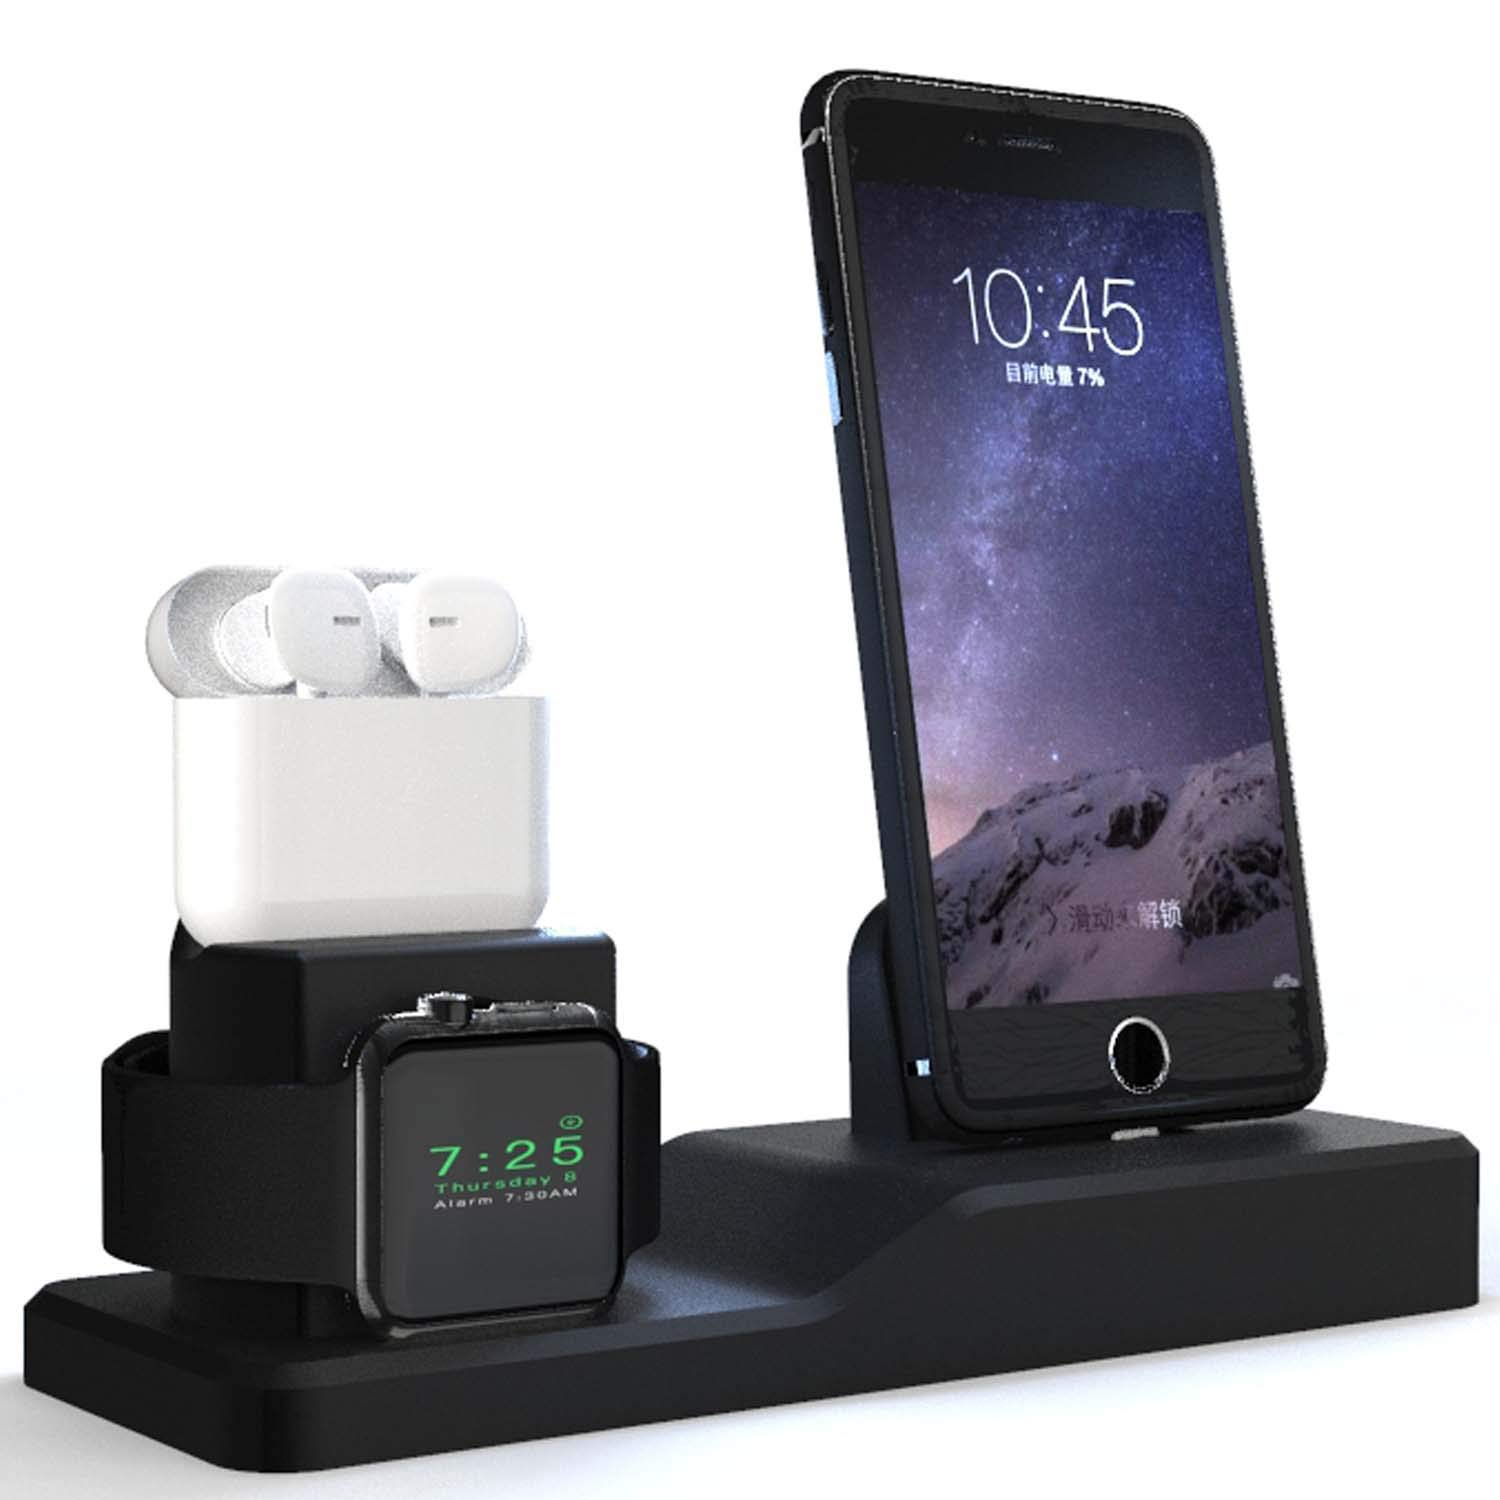 MOTOSPEED Apple Watch Stand, Charging Station for AirPods iPhone,Support for Apple Watch Series 4/3/2/1/ AirPods/iPhone X/8/8Plus/7/7 Plus /6S /6S Plus/iPad - Support Nightstand Mode by MOTOSPEED